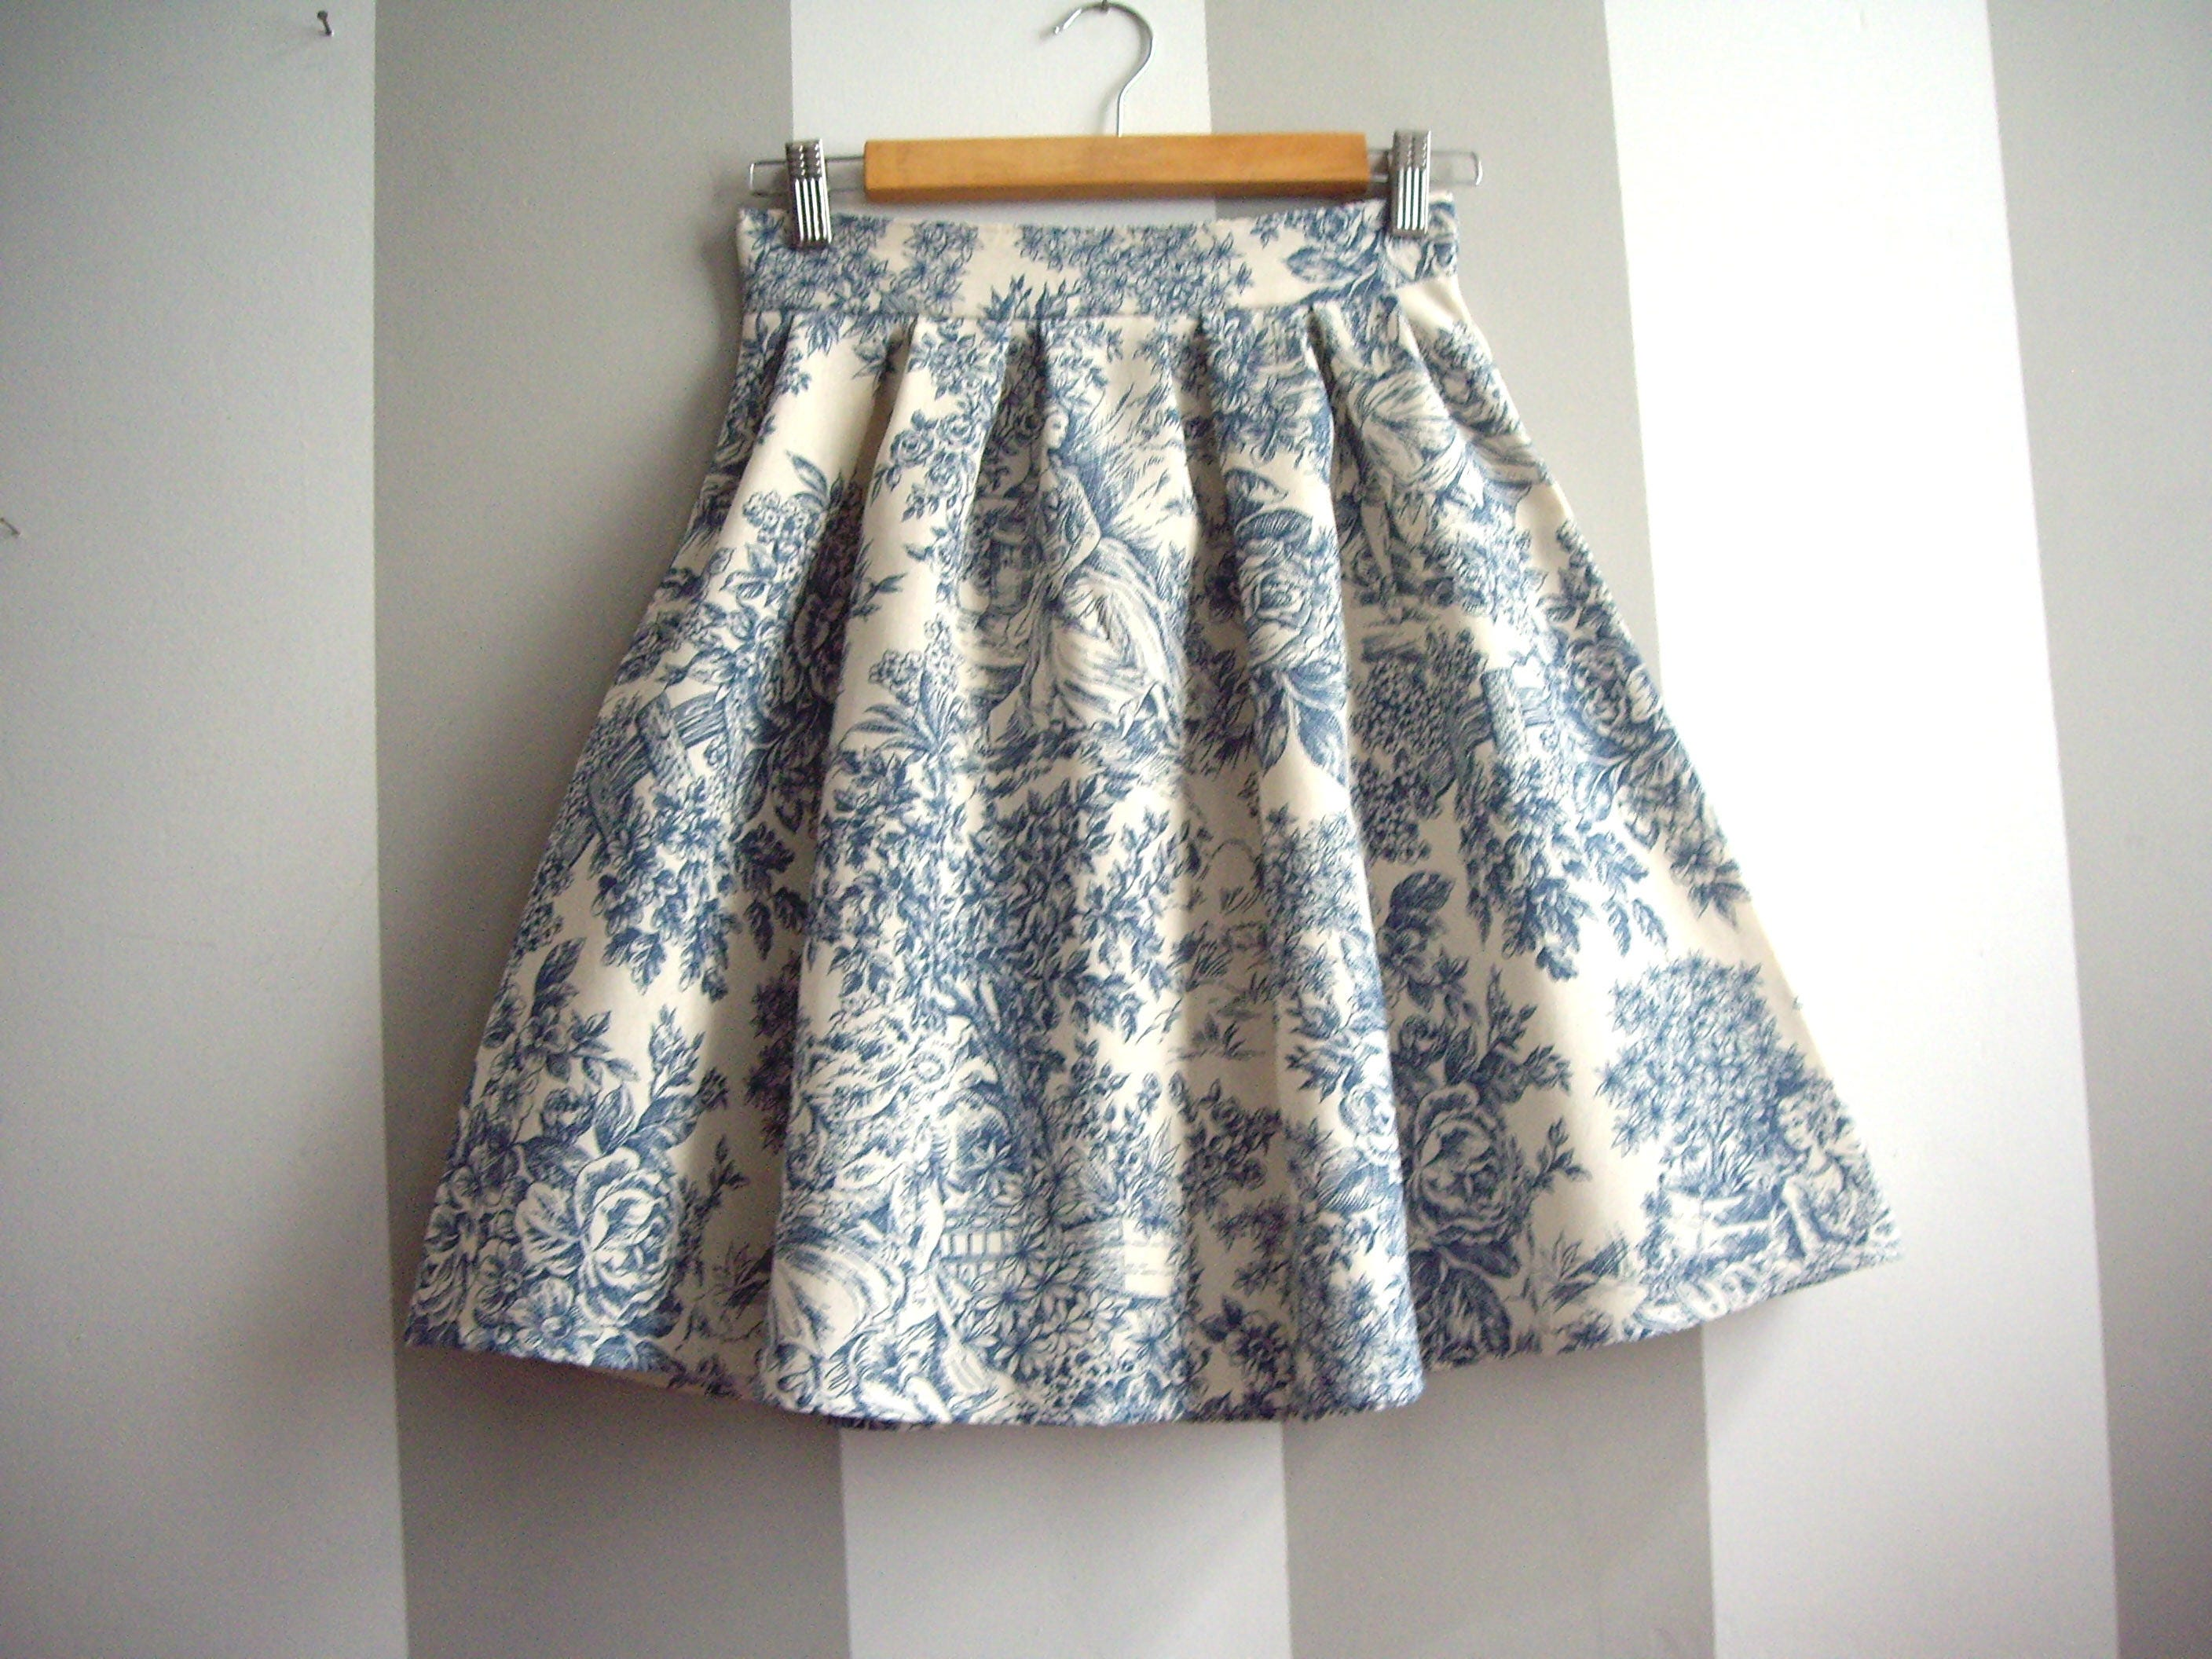 Toile de Jouy Skirt in Blue, Cotton Pleated Skirt With Toile Print, High Waist Lolita Skirt, Plus Sizes Available, Made to Order